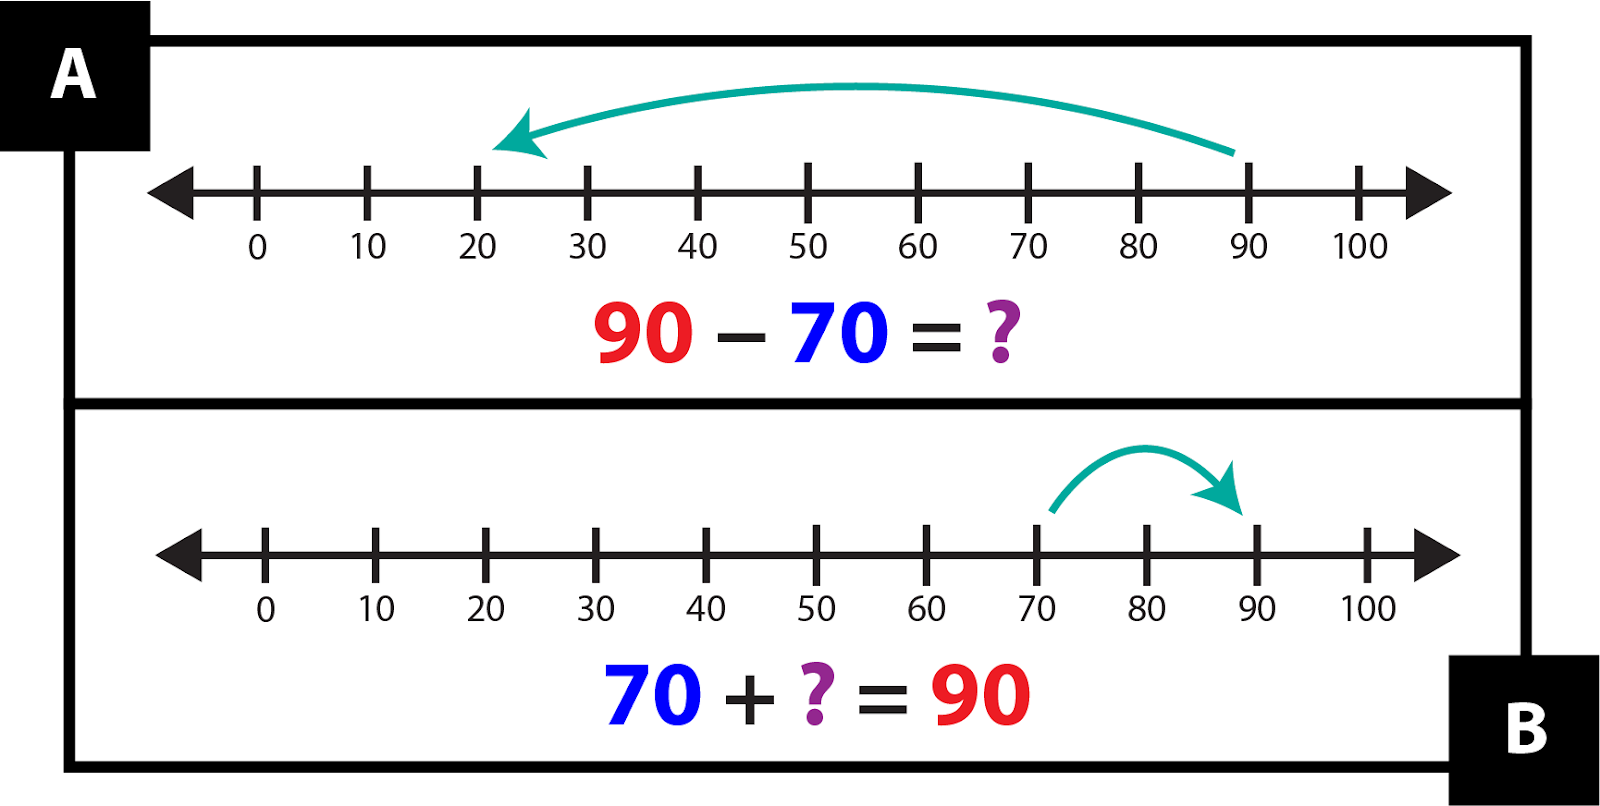 A. shows a number line from 0 to 100. An arrow points from 90 to 20. Red 90 minus blue 70 = purple question mark. B. shows a number line from 0 to 100. An arrow points from 70 to 90. Blue 70 + purple question mark = red 90.